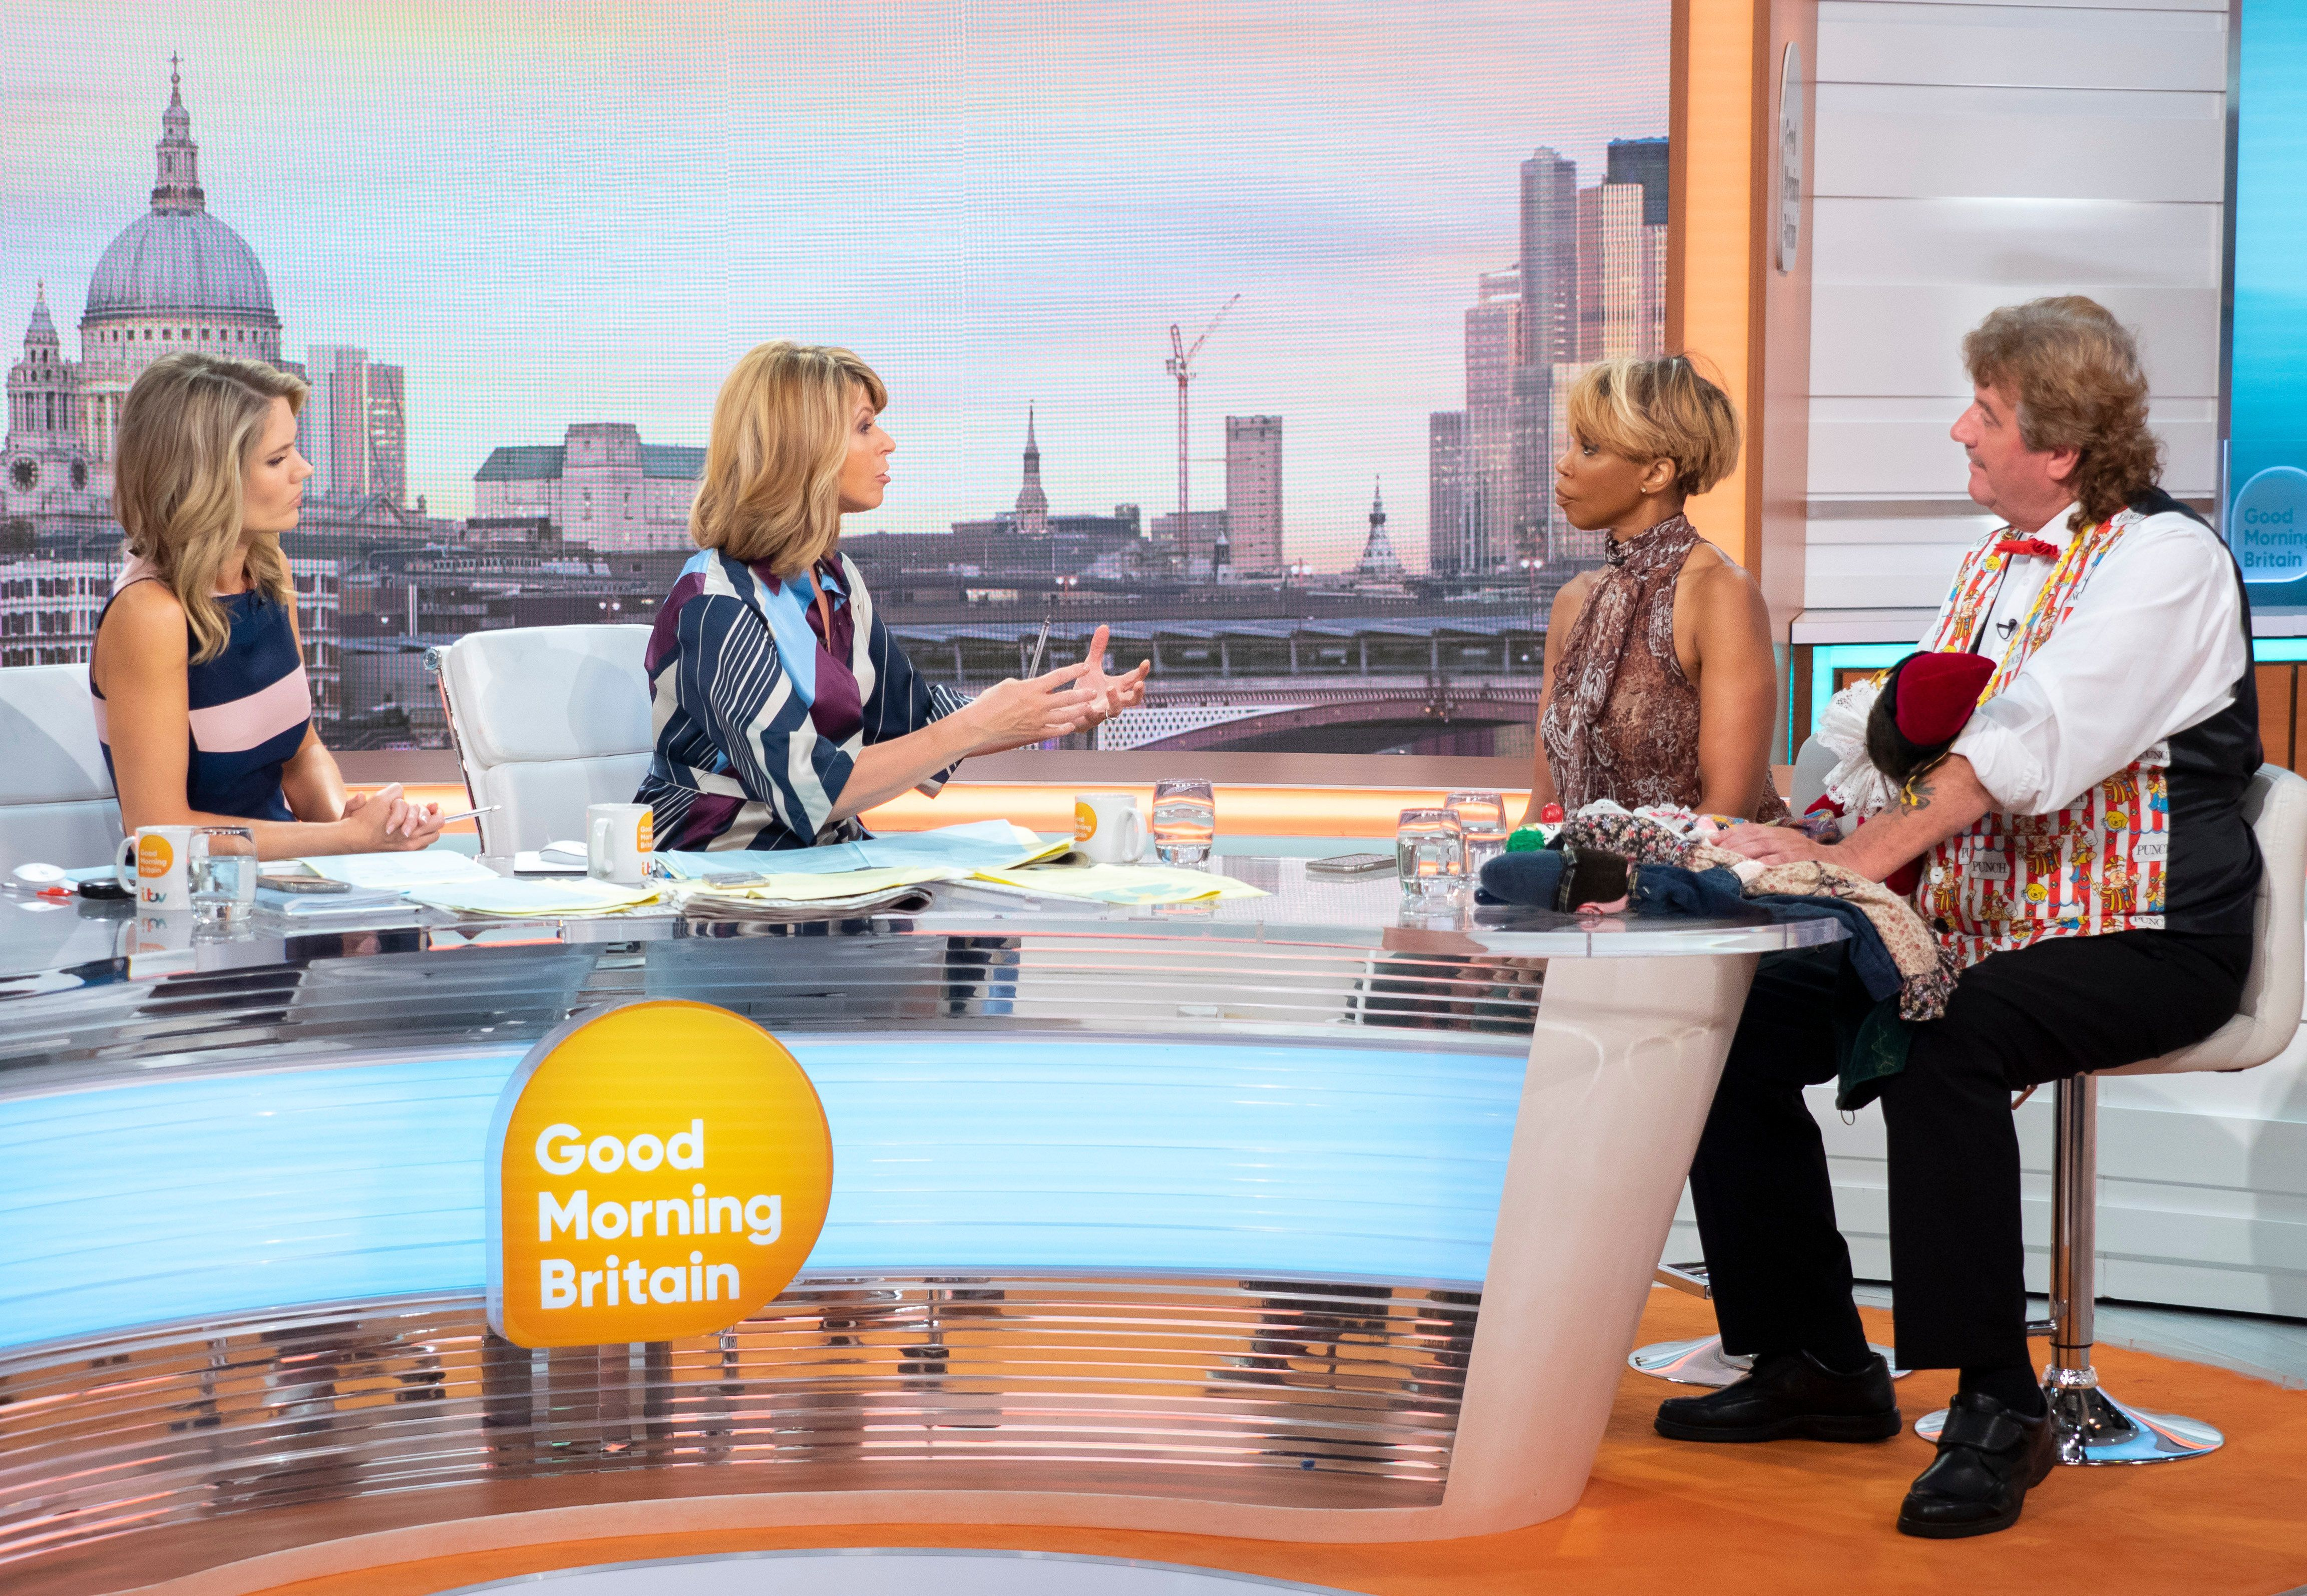 Kate Garraway Asks 'Good Morning Britain' Guest To Remove Offensive